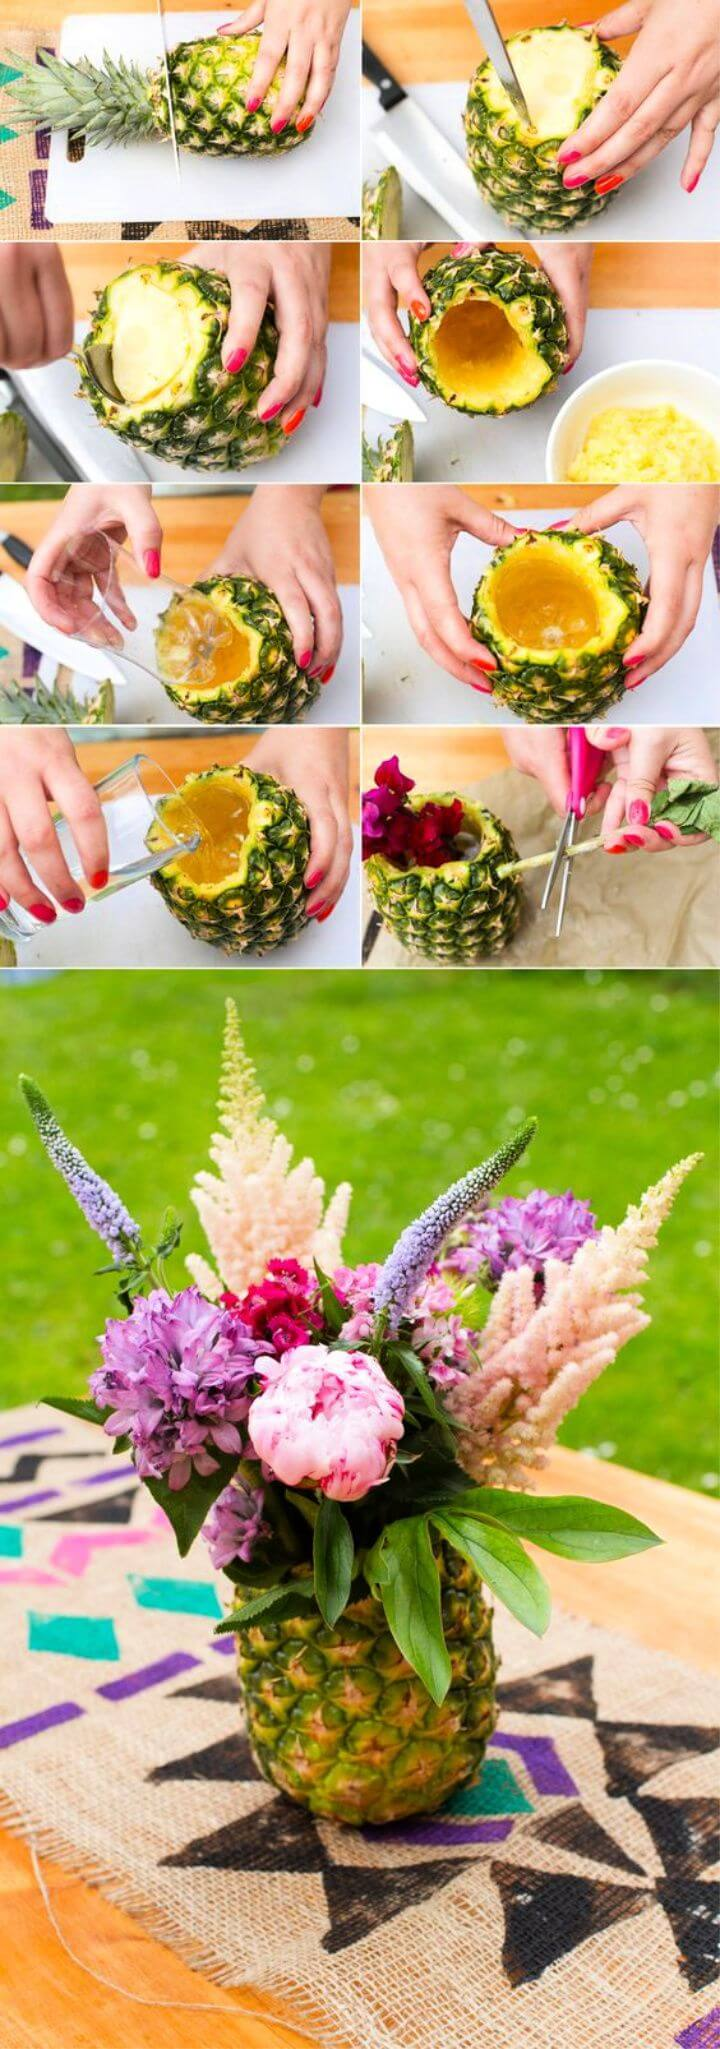 DIY Gorgeous Pineapple Vase For Home Decor